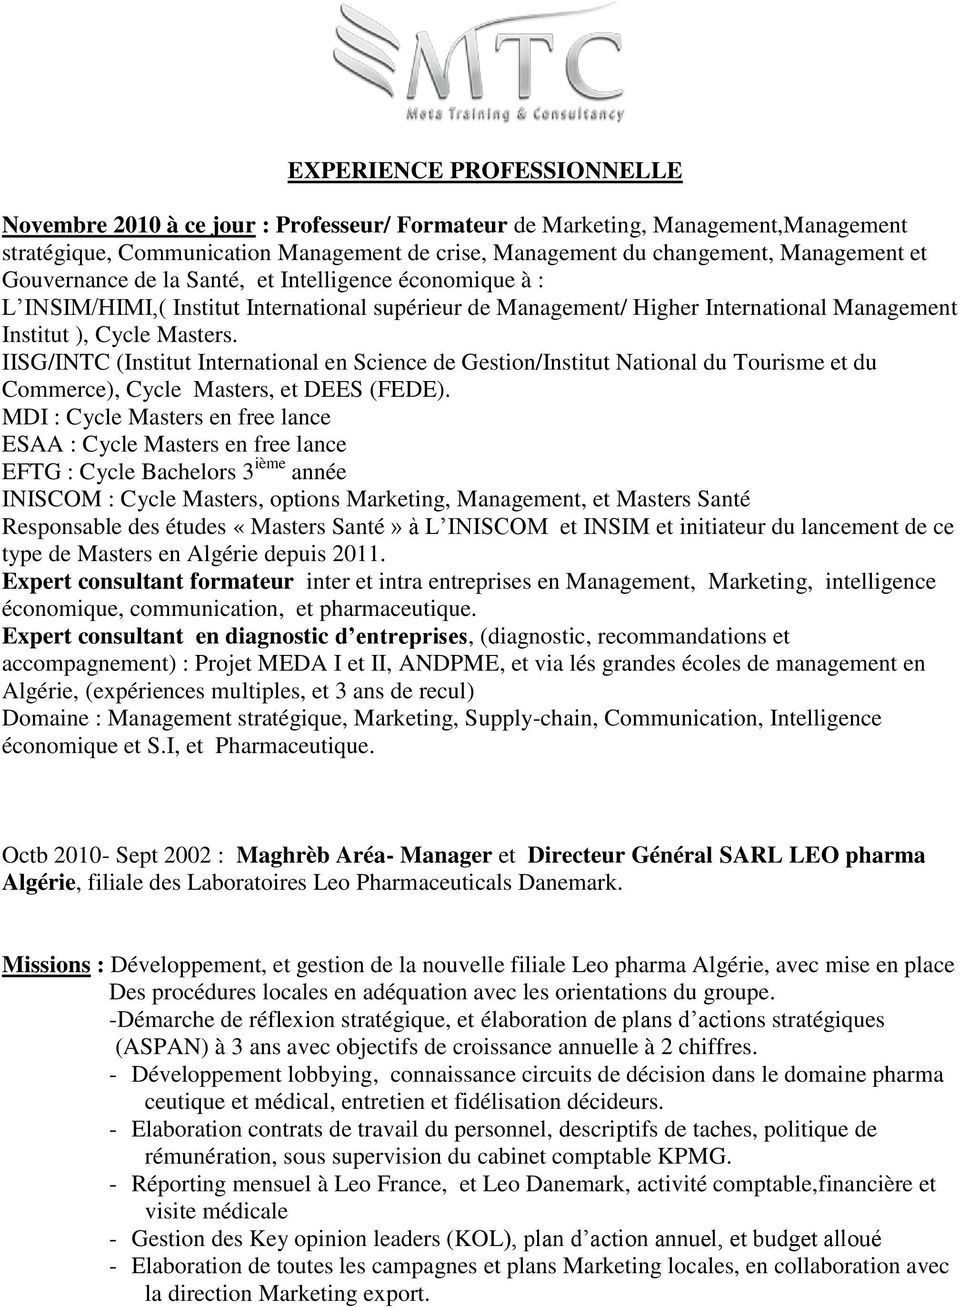 IISG/INTC (Institut International en Science de Gestion/Institut National du Tourisme et du Commerce), Cycle Masters, et DEES (FEDE).